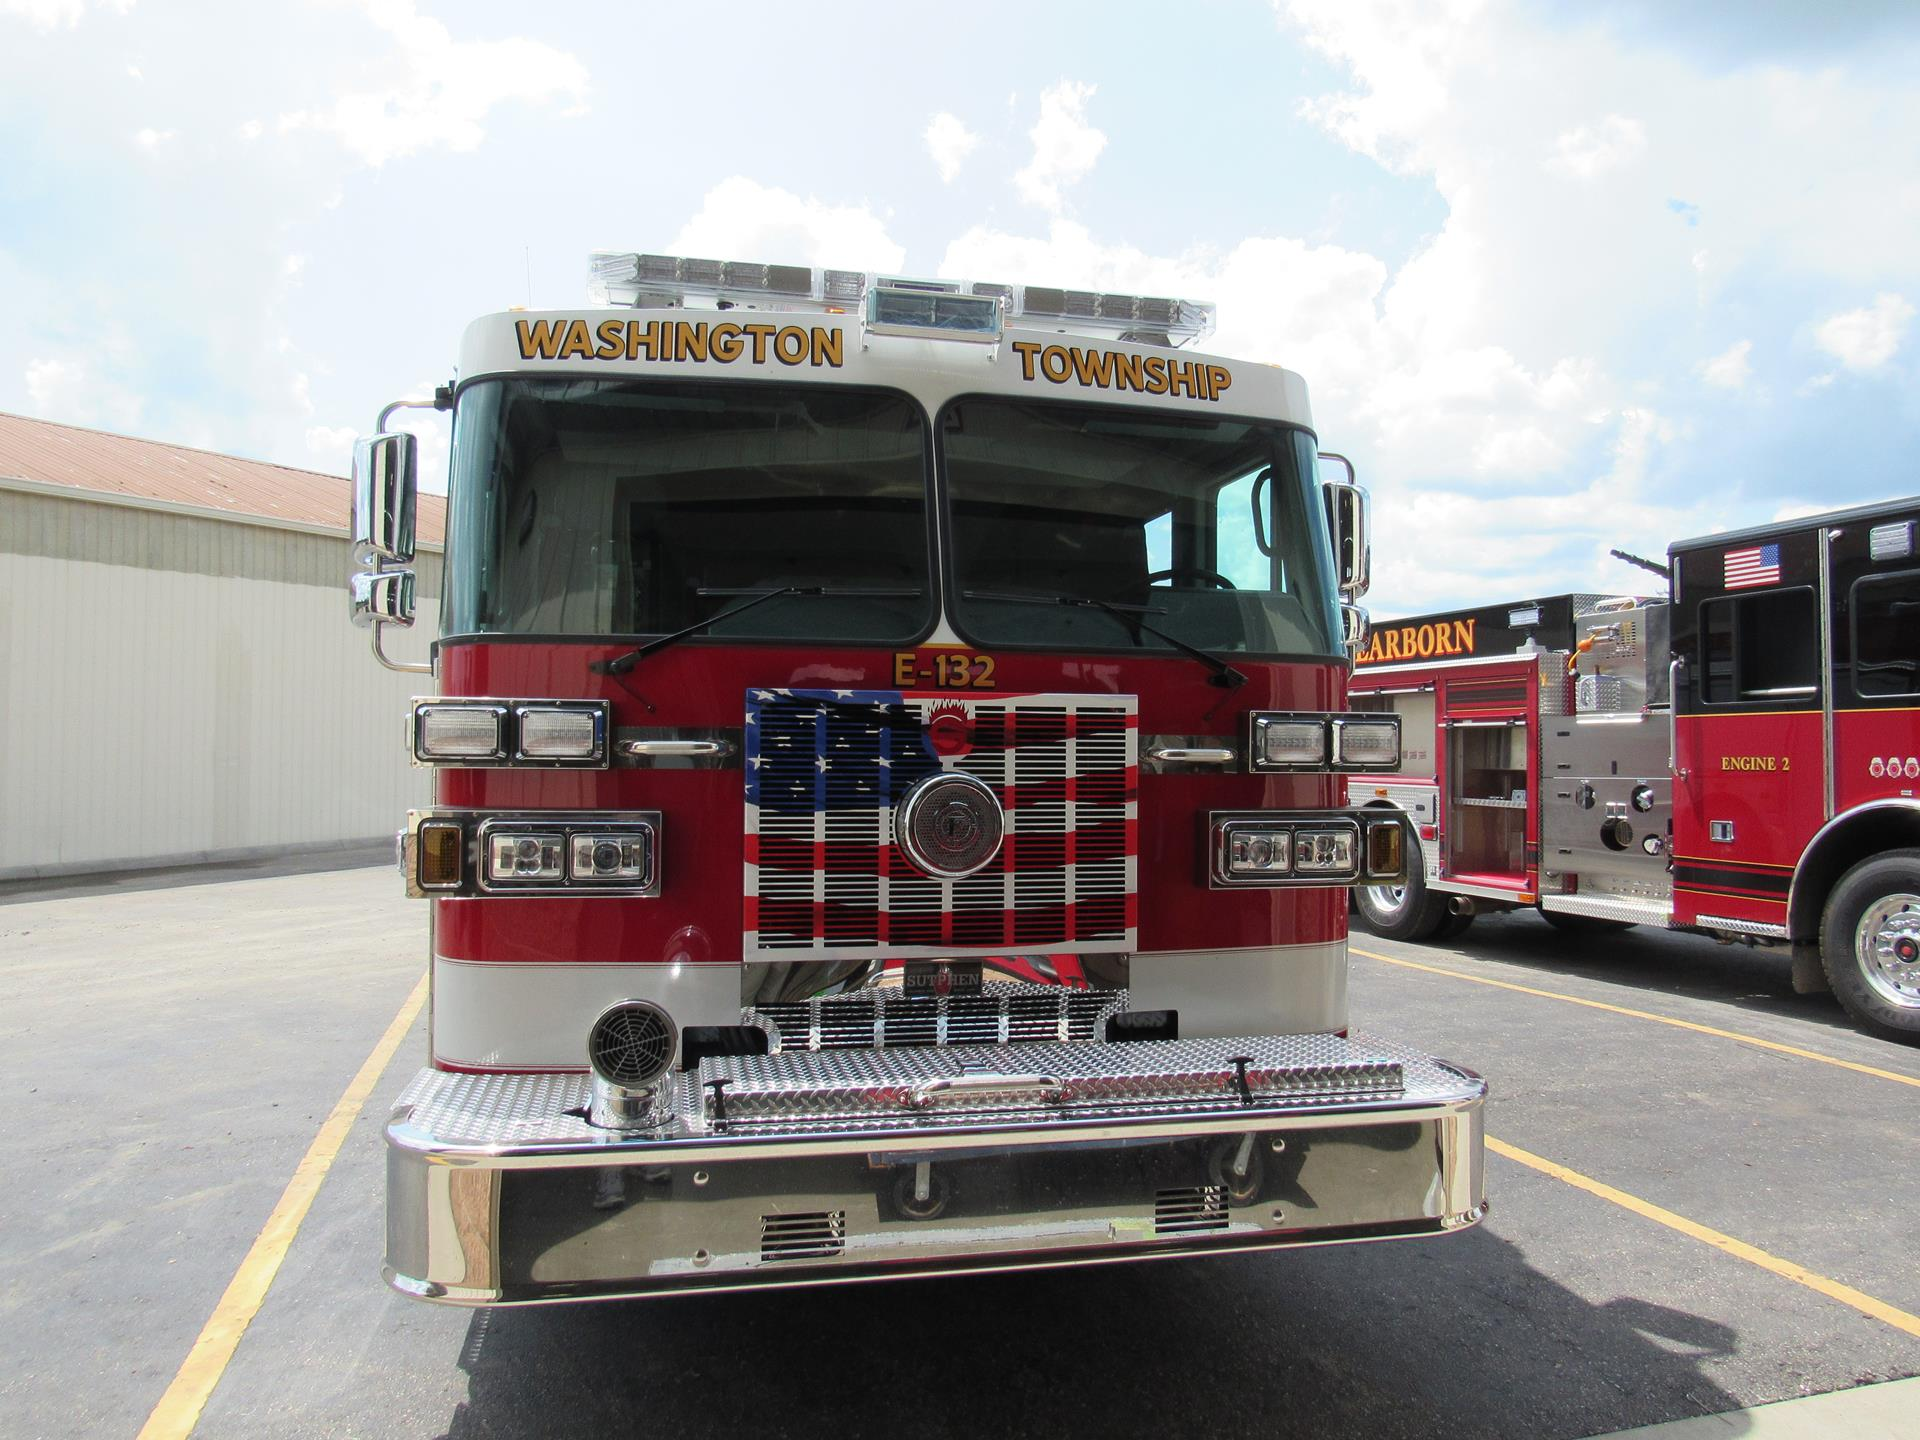 Washington Township Fire Department